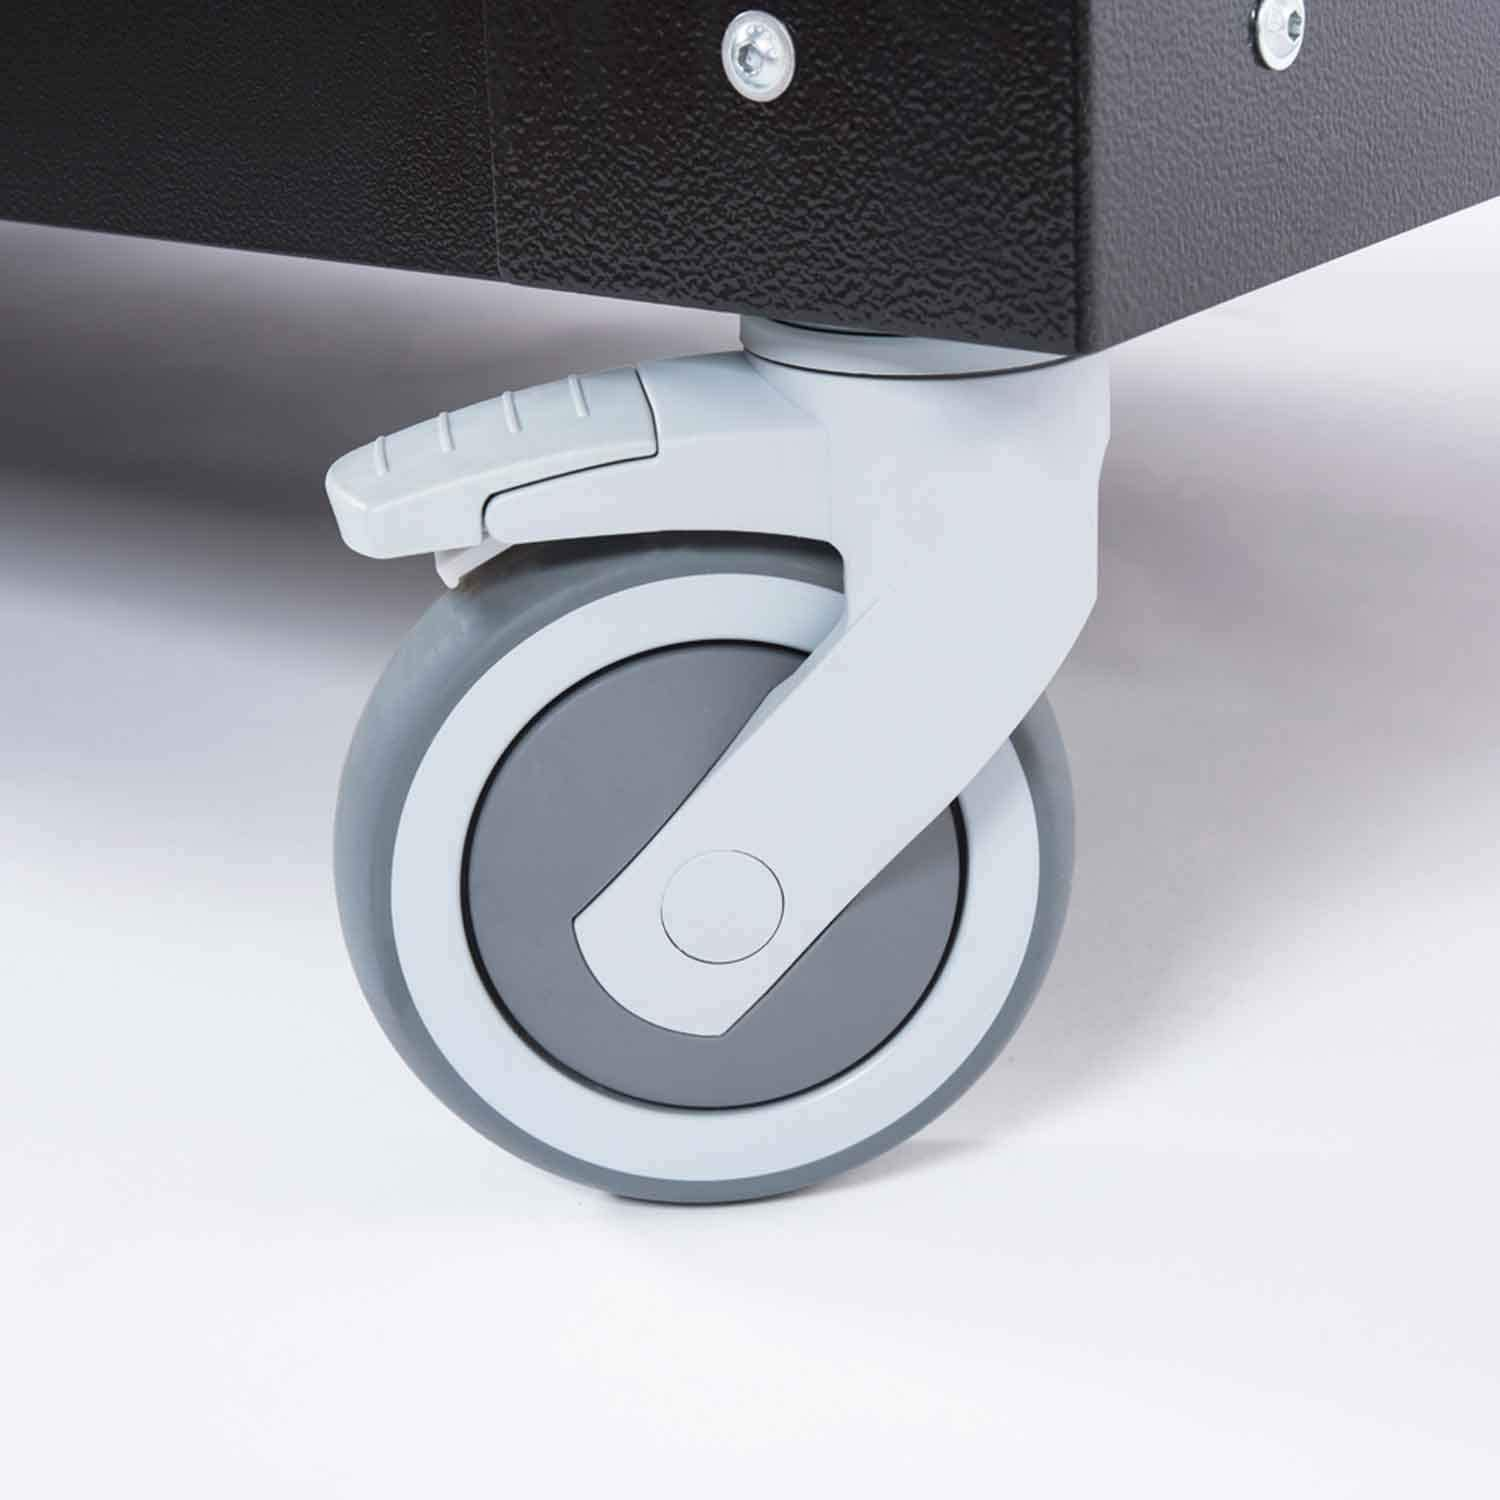 ACTAVO-130 Table//Base Stainless Steel